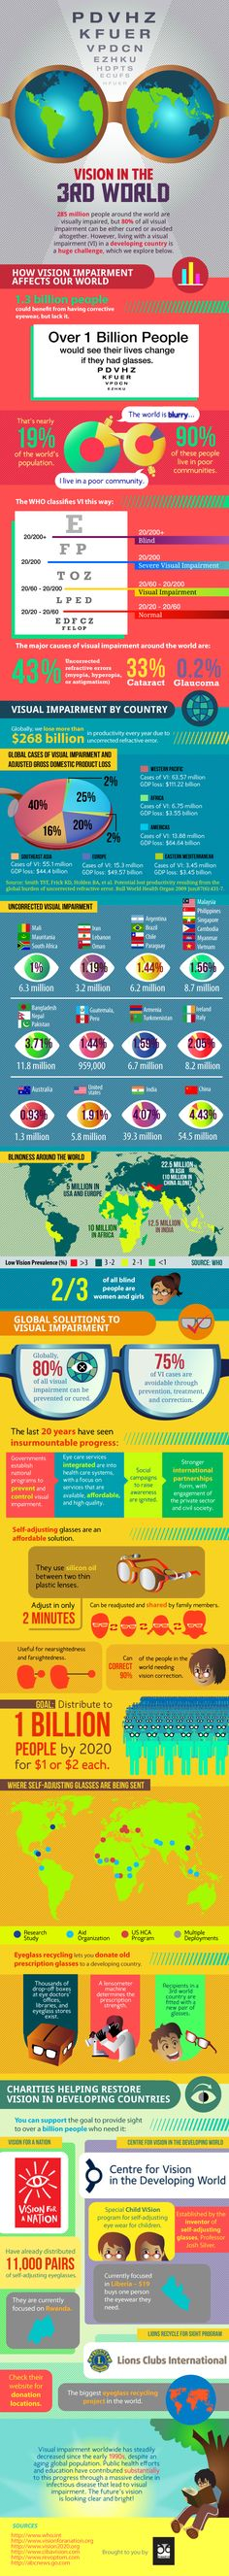 Vision in the 3rd World.  Did you know millions of people in poor countries need glasses but can't get them?